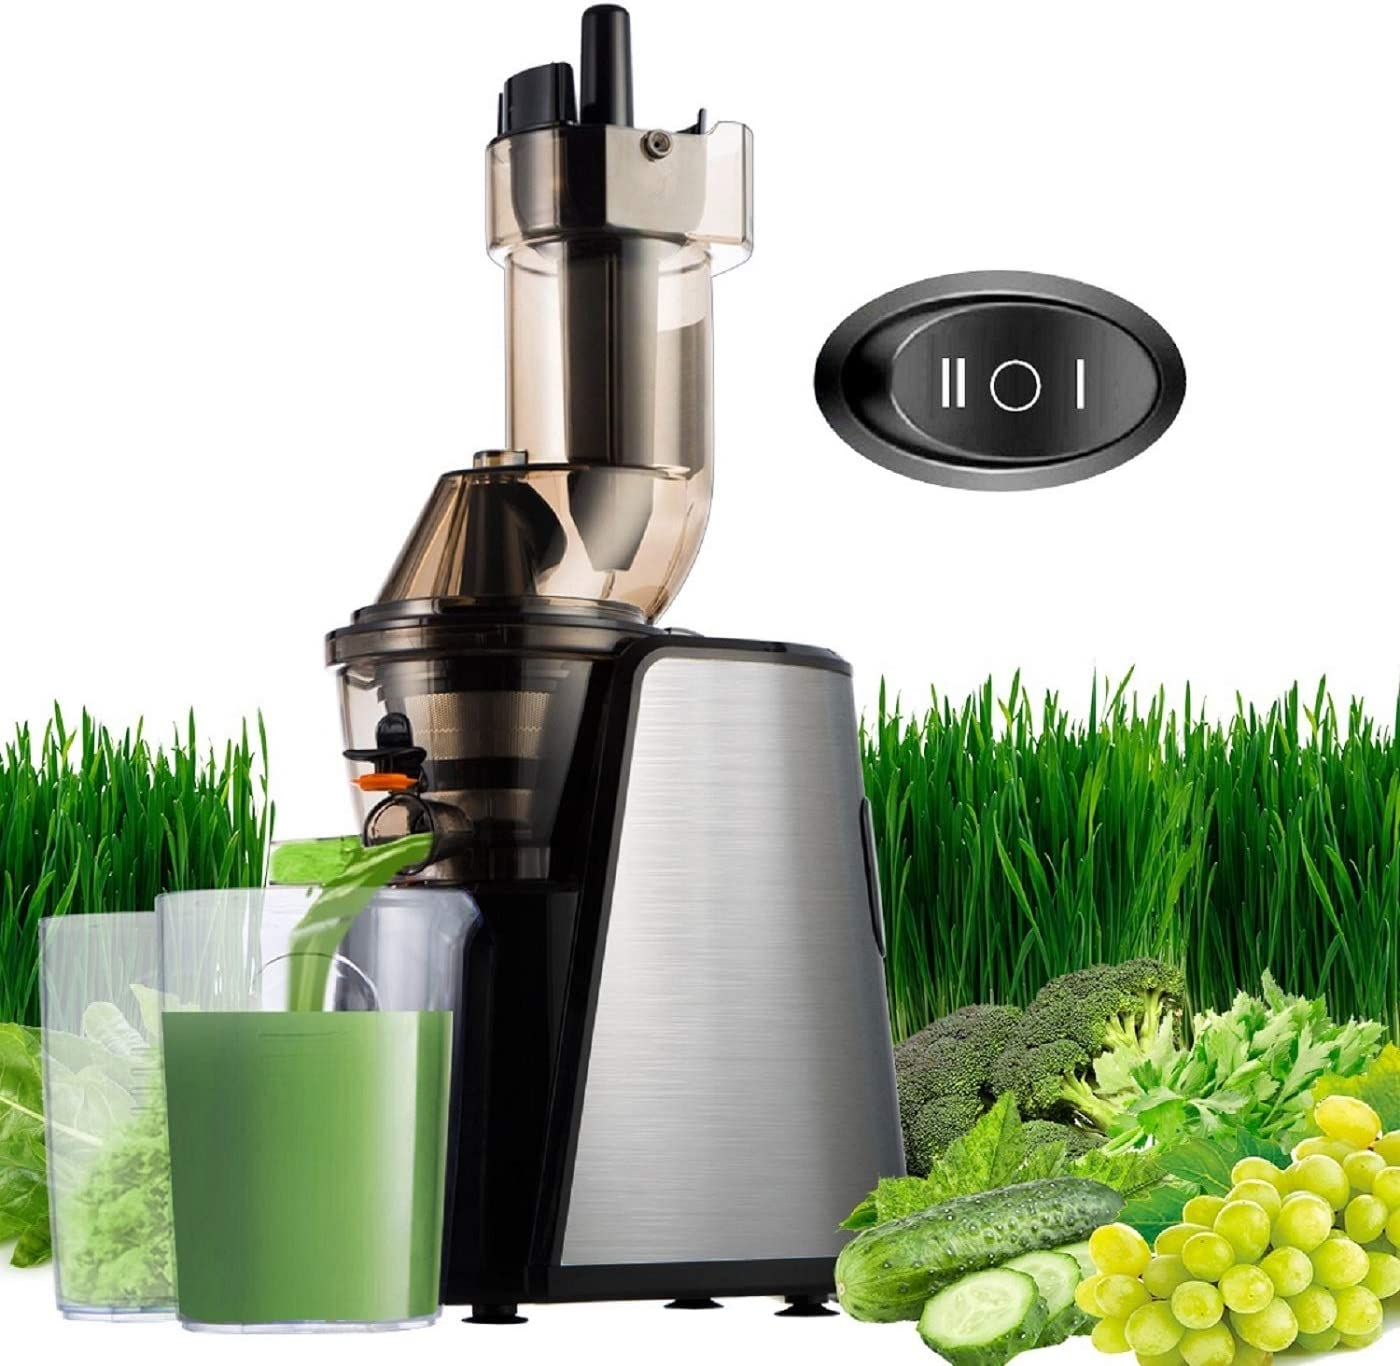 Masticating Juicer Cold Press Slow Juice Extractor Easy to Clean Extraction Creates Fruit Juice Machine